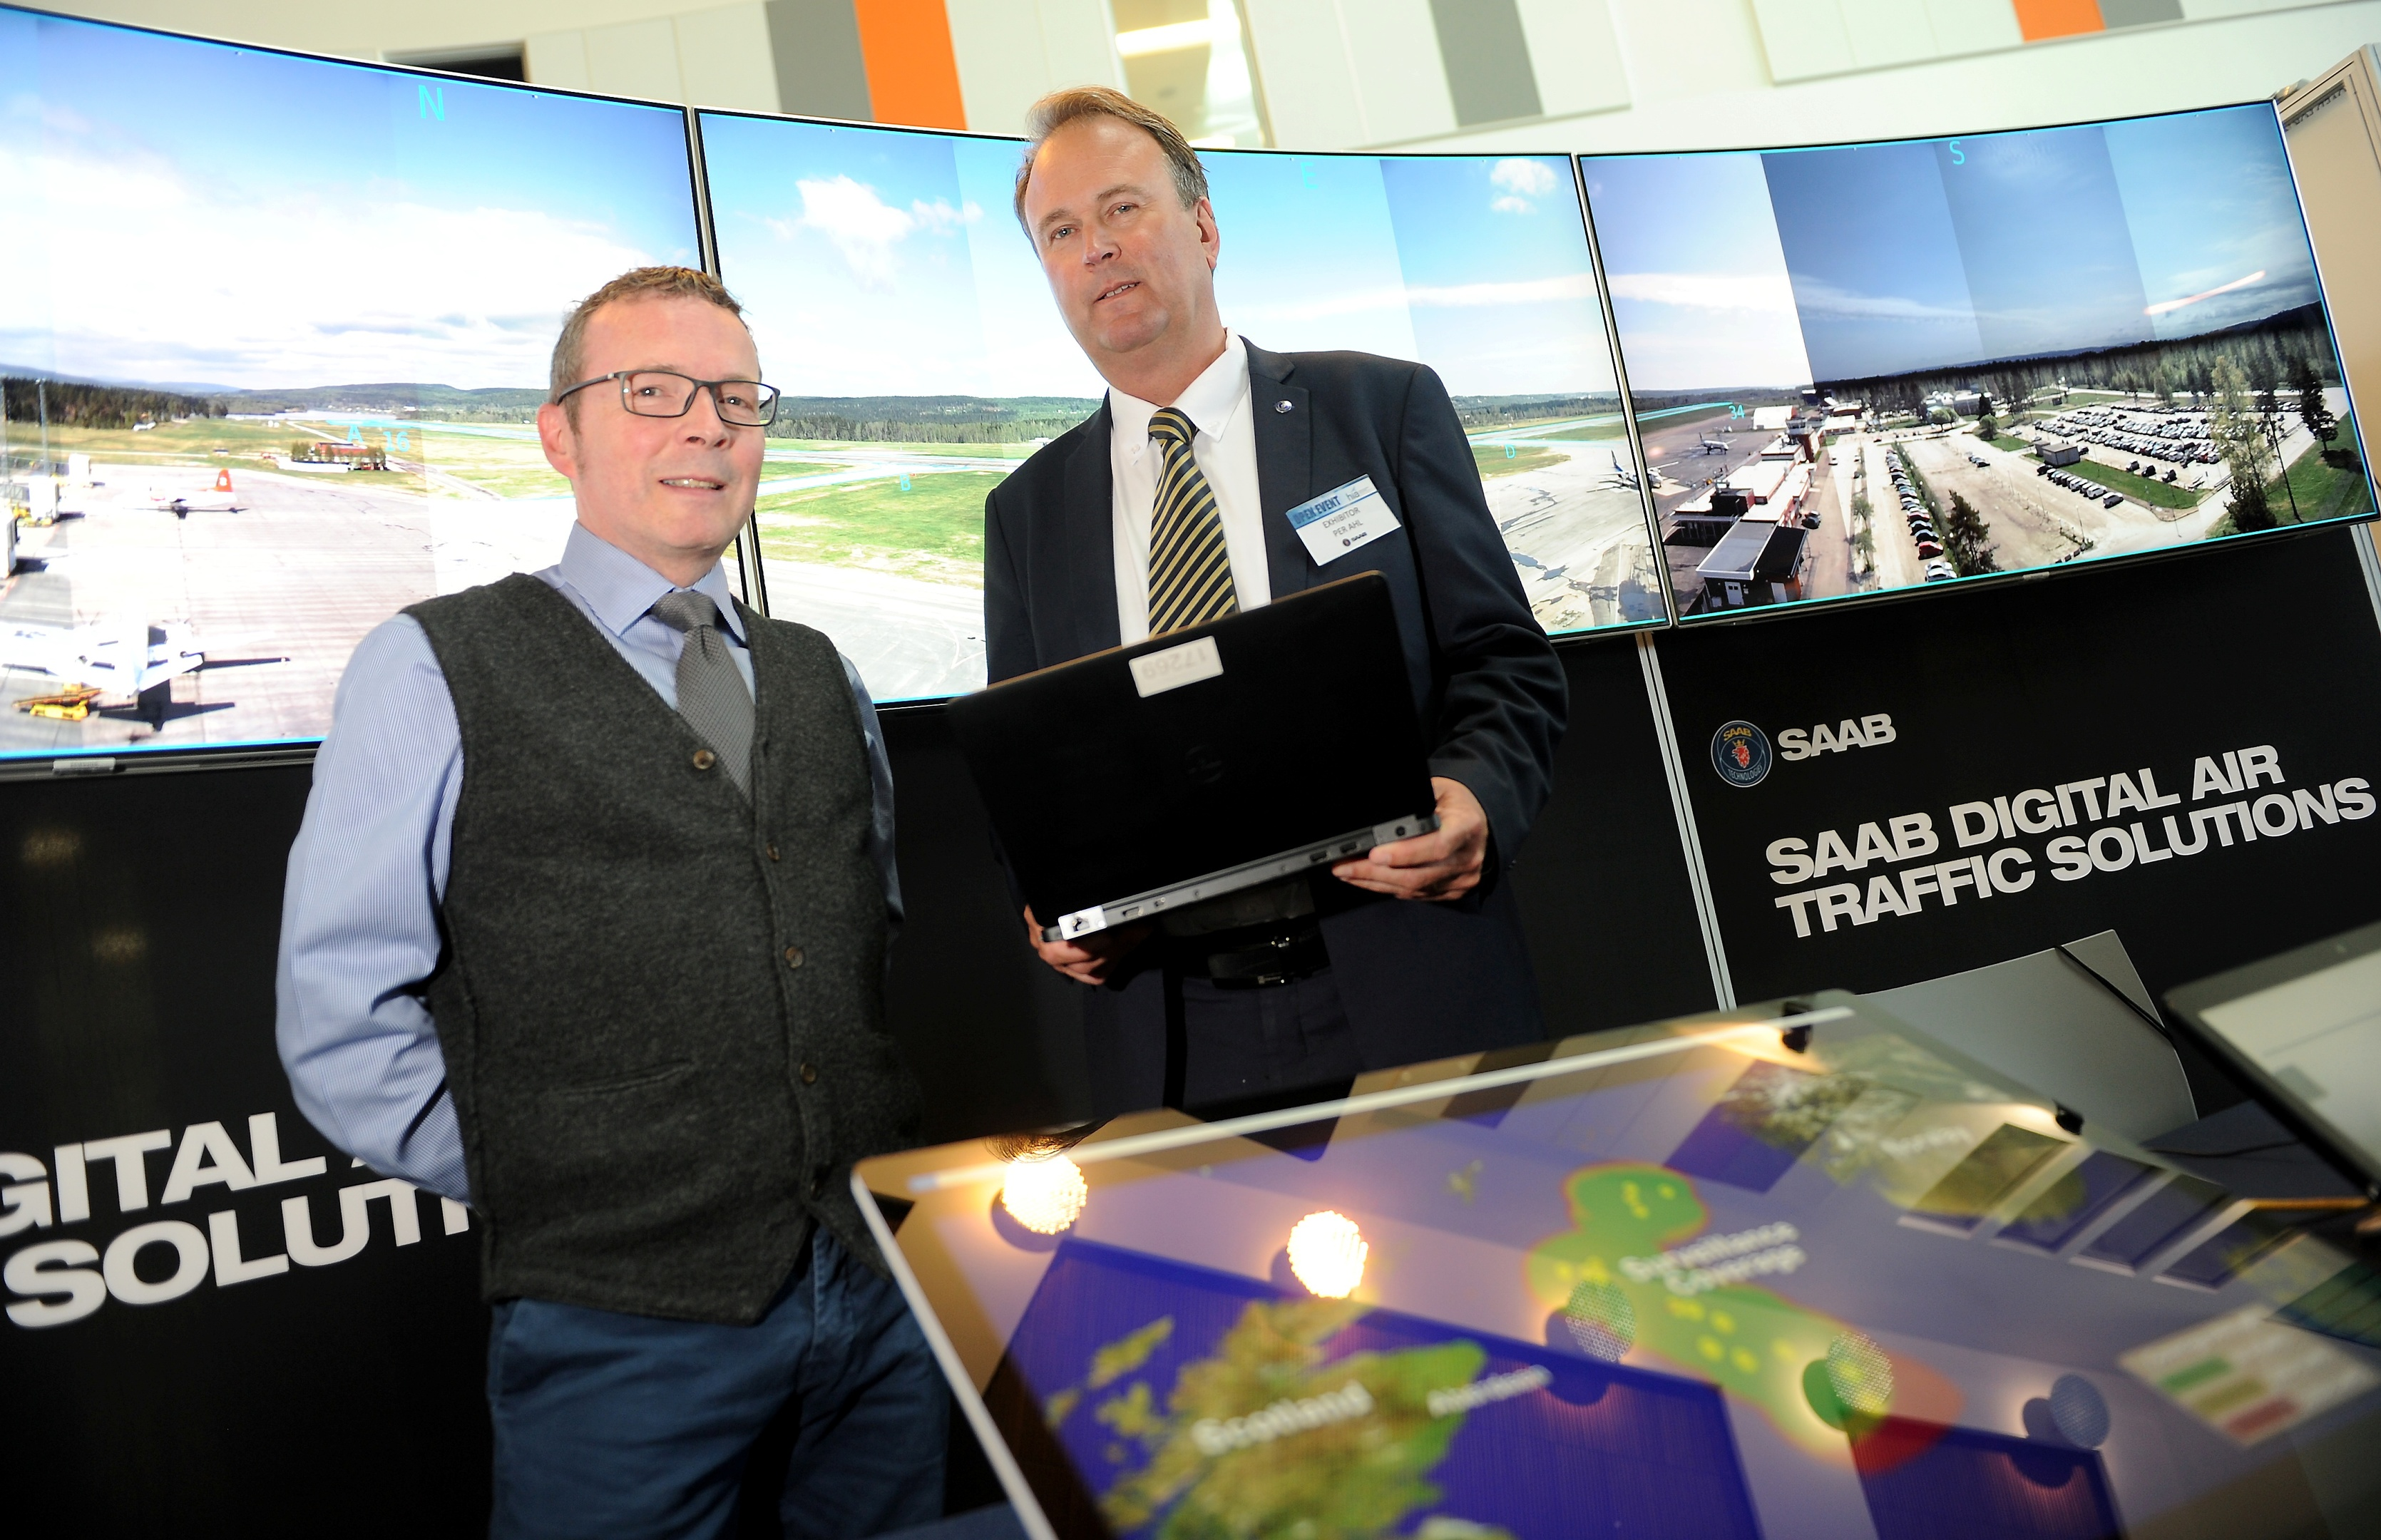 Inglis Lyon (left) Managing Director of HIAL with Per Ahl of Saab as the company demonstrates its use of digital control towers at an exhibition in Inverness yesterday. Picture by Sandy McCook.